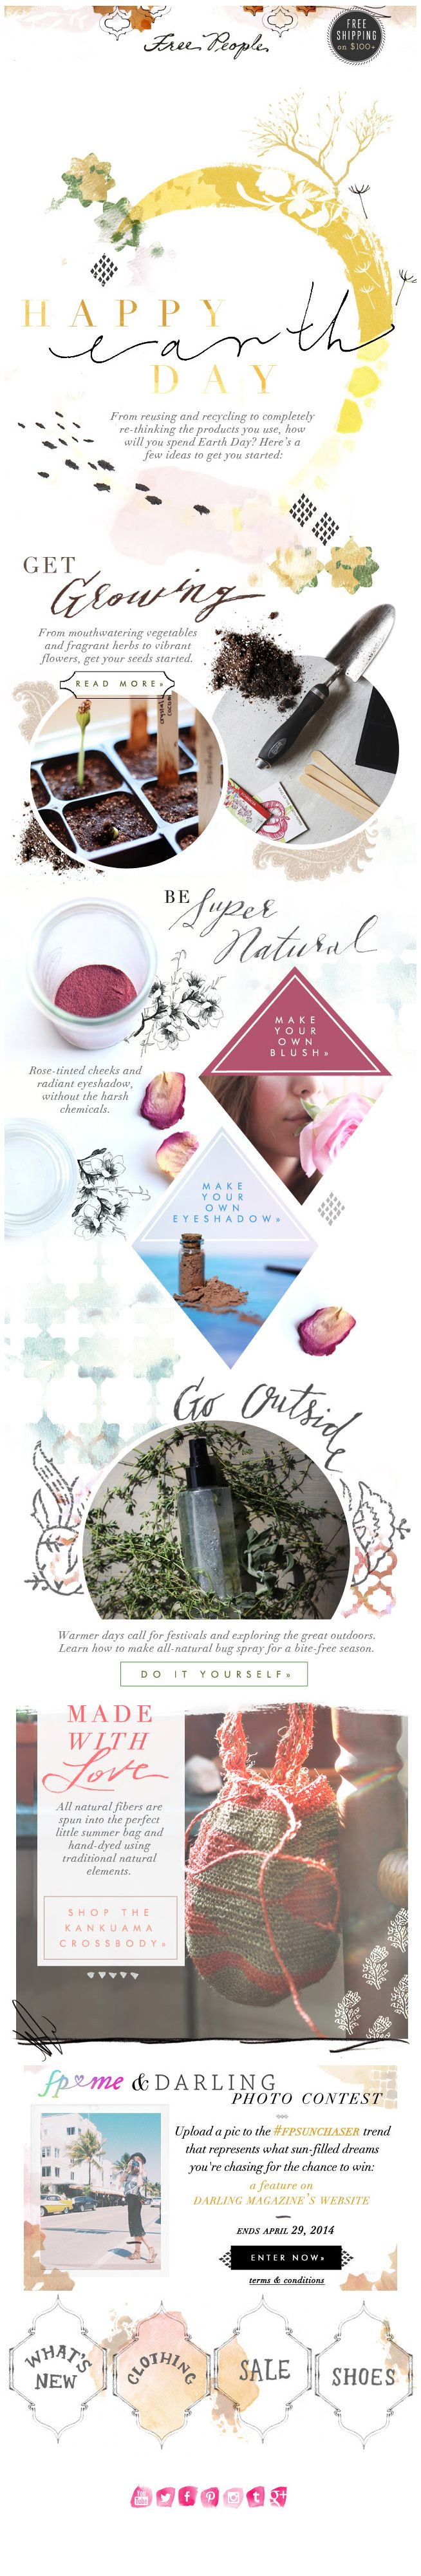 a work of art // #newsletterdesign #email // Free People : Earth Day